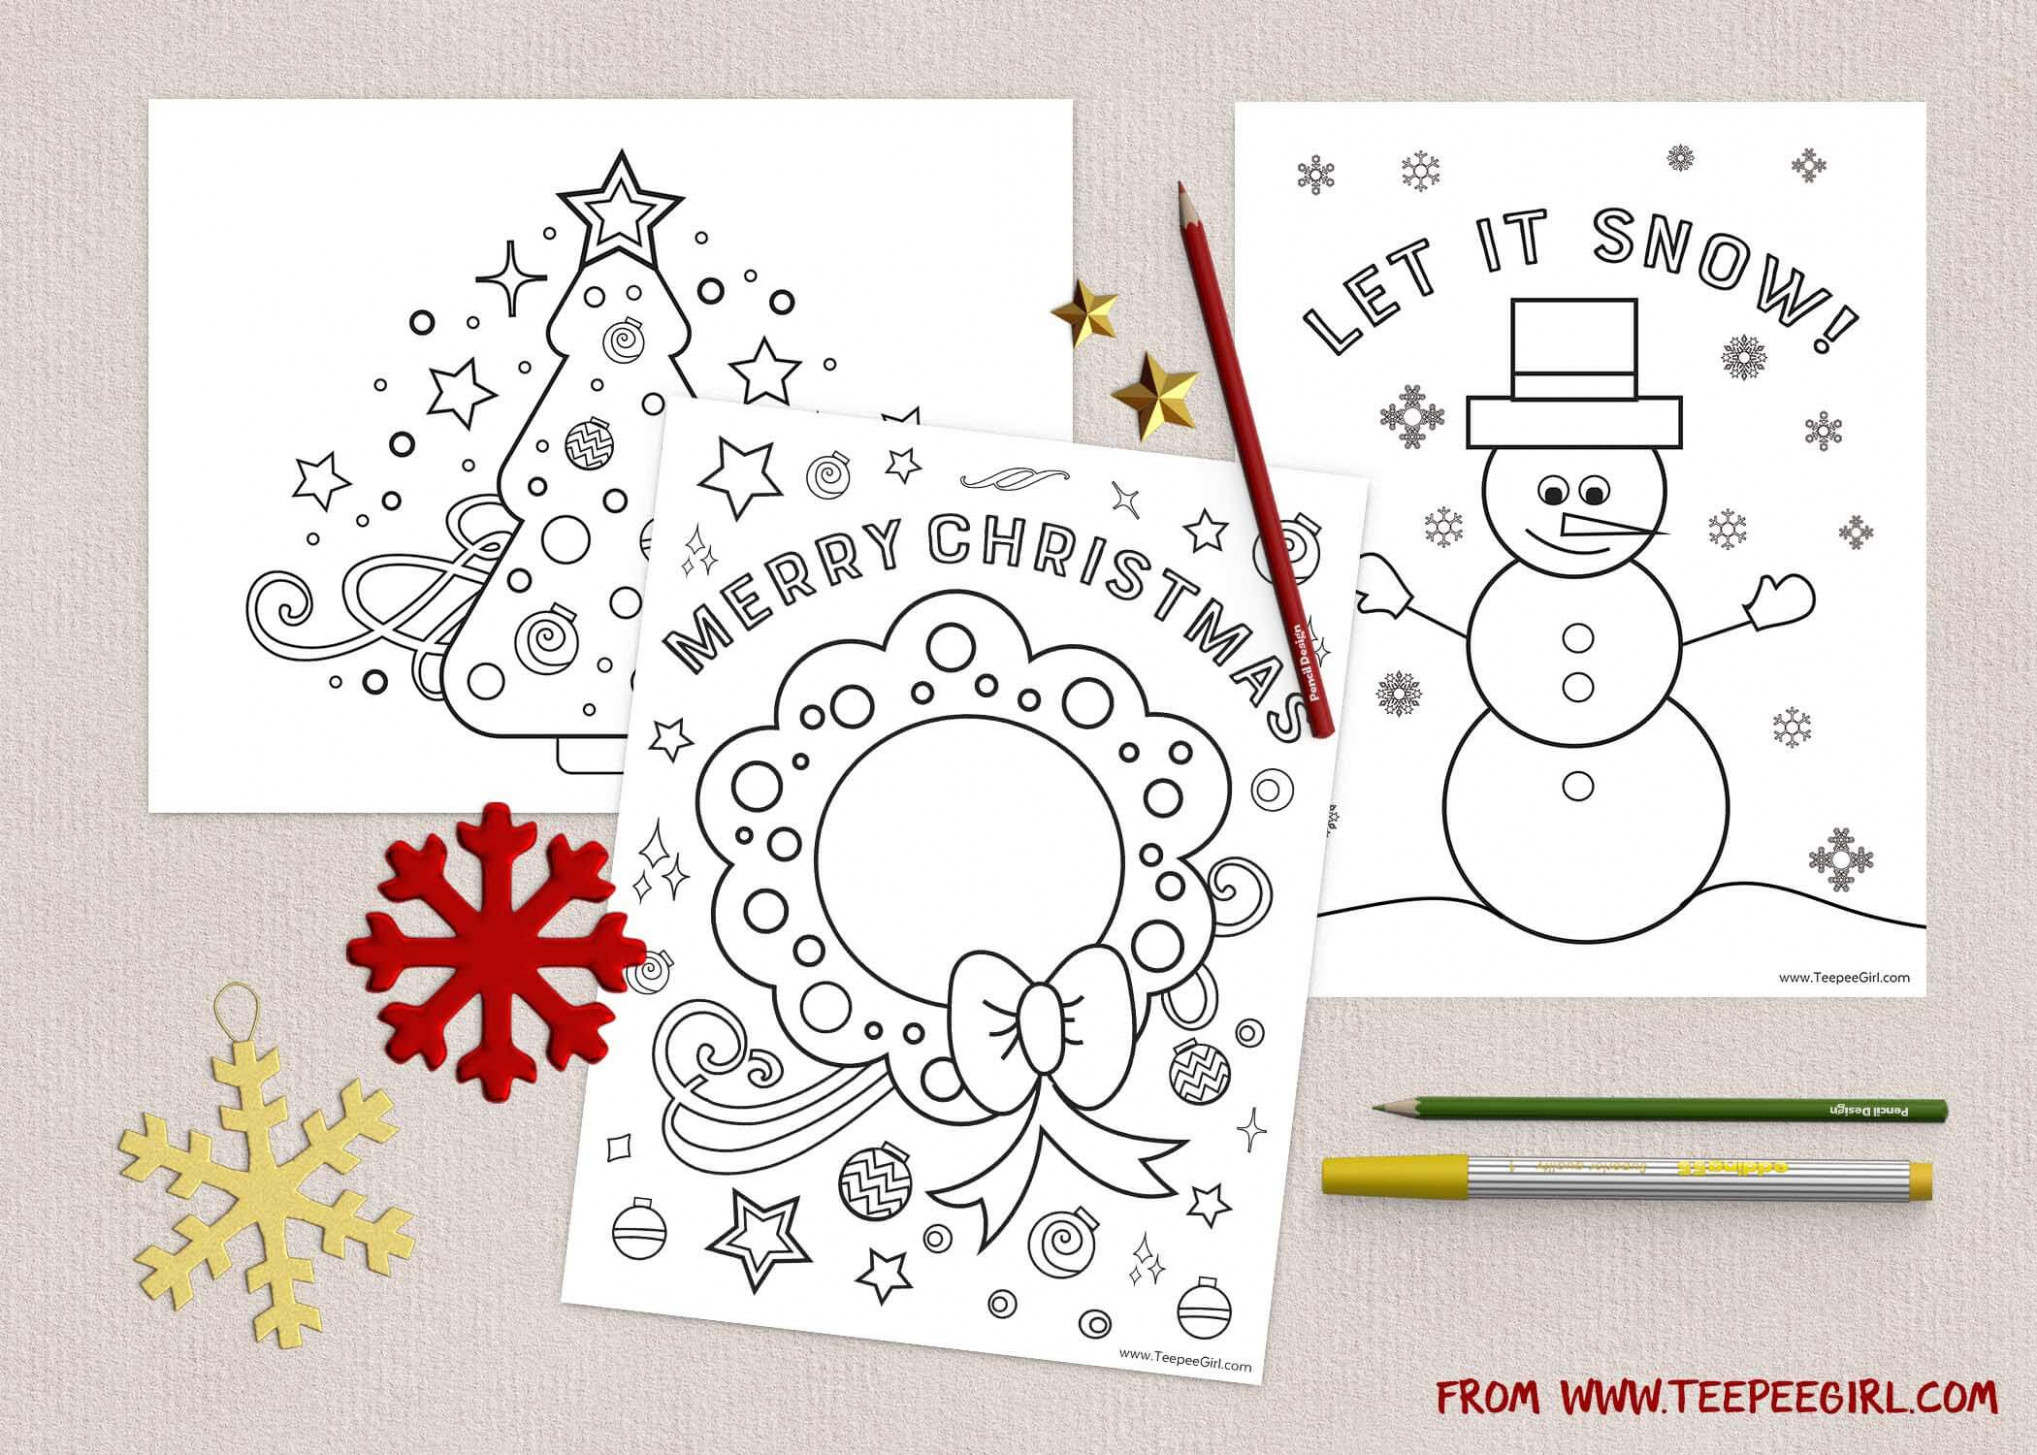 Free Christmas Coloring Pages | www.TeepeeGirl